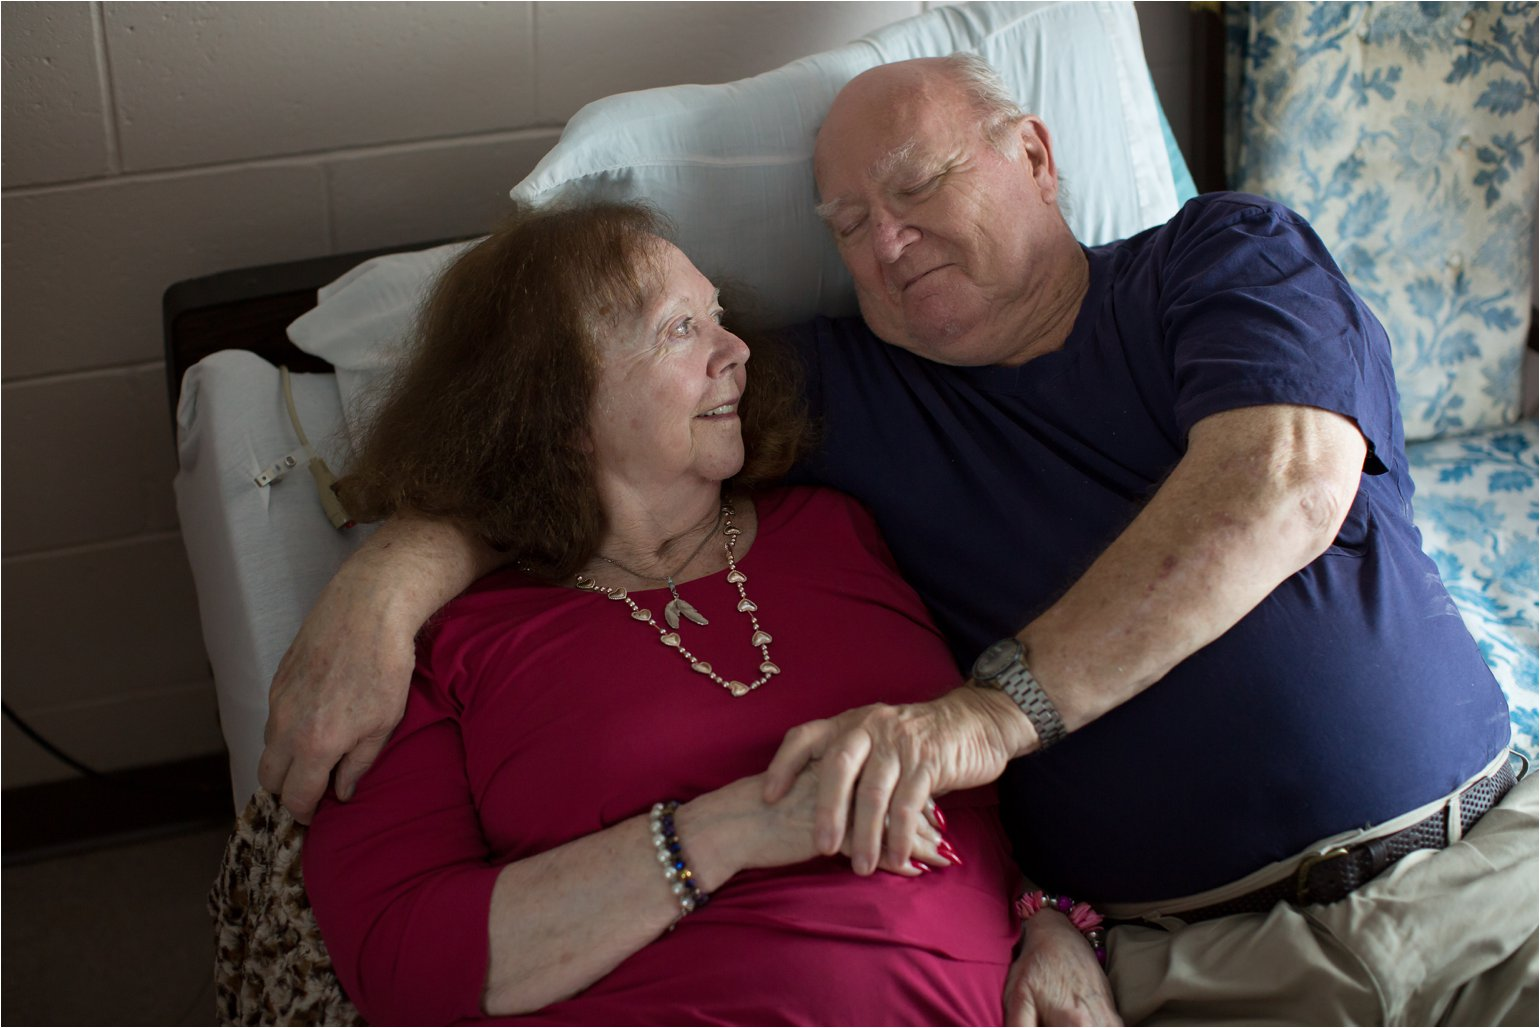 Elderly Couple Lying on Bed (C) Maundy Mitchell